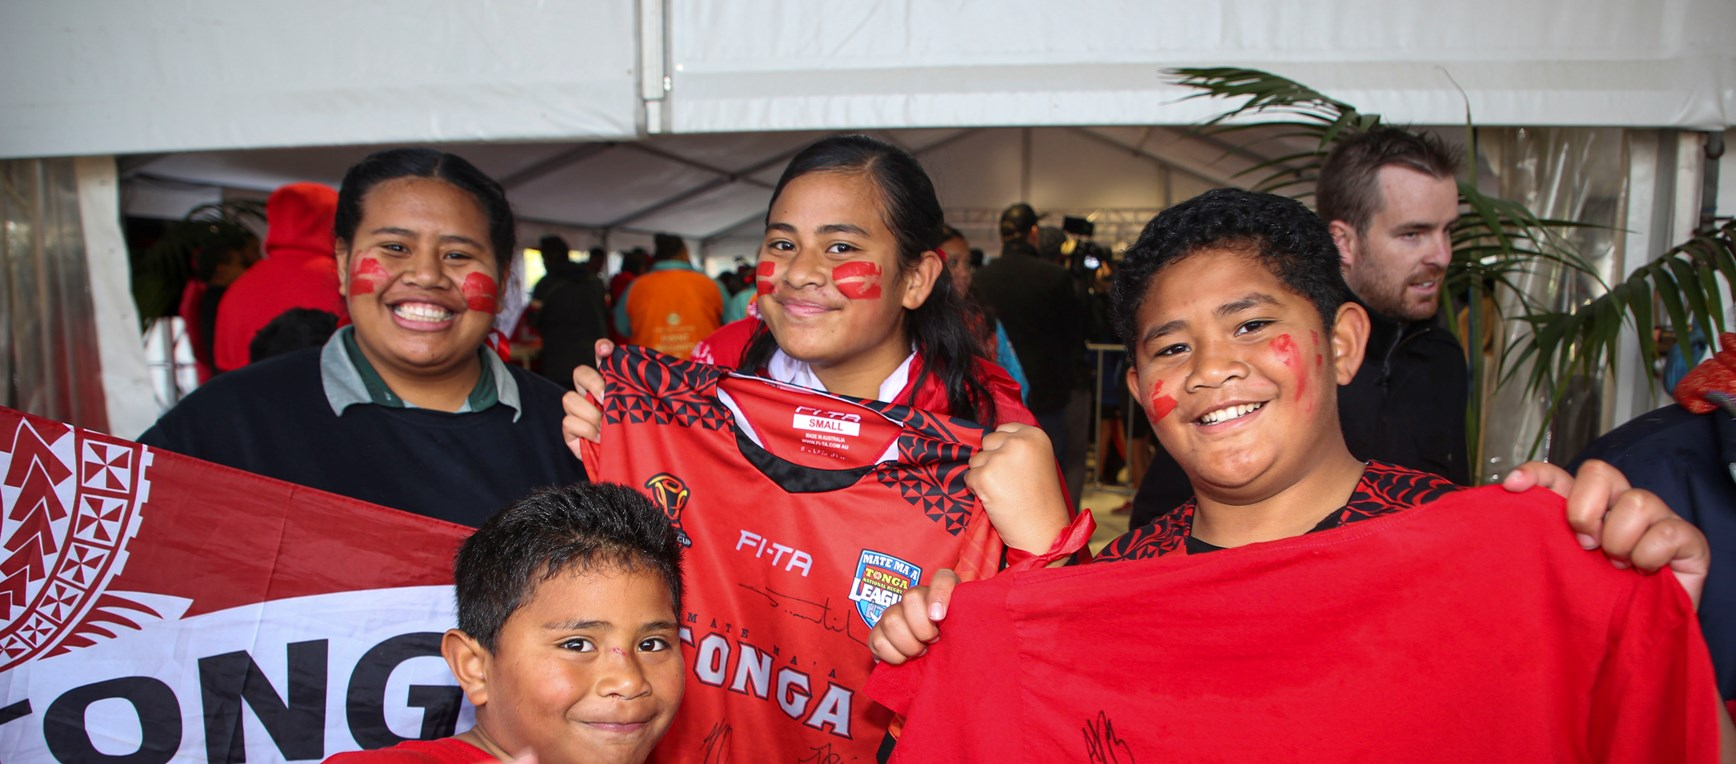 In pictures: Mate Ma'a Tonga fan day